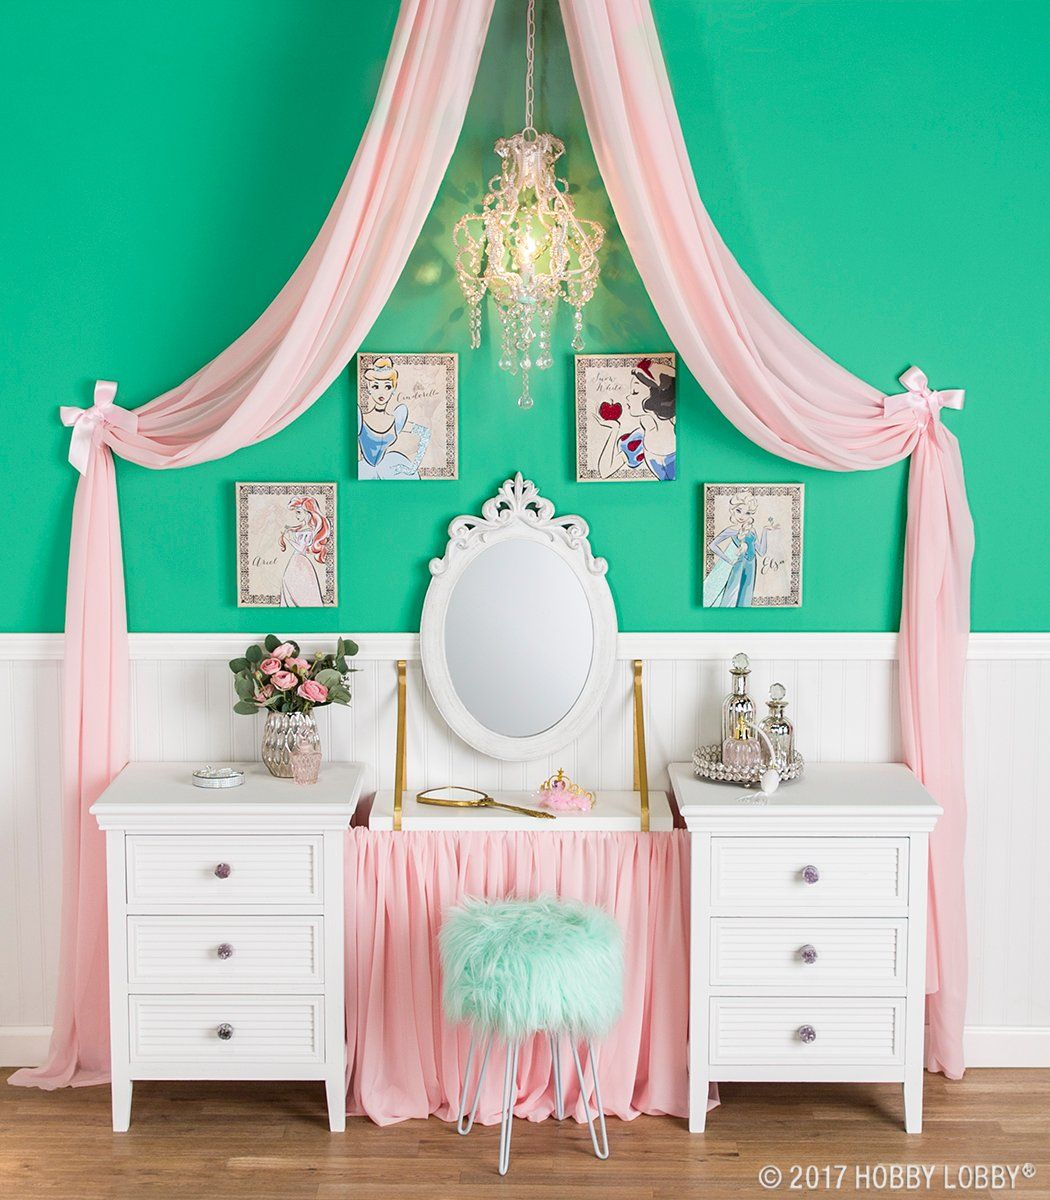 These Vintage Inspired Princess Prints Are The Perfect Addition To